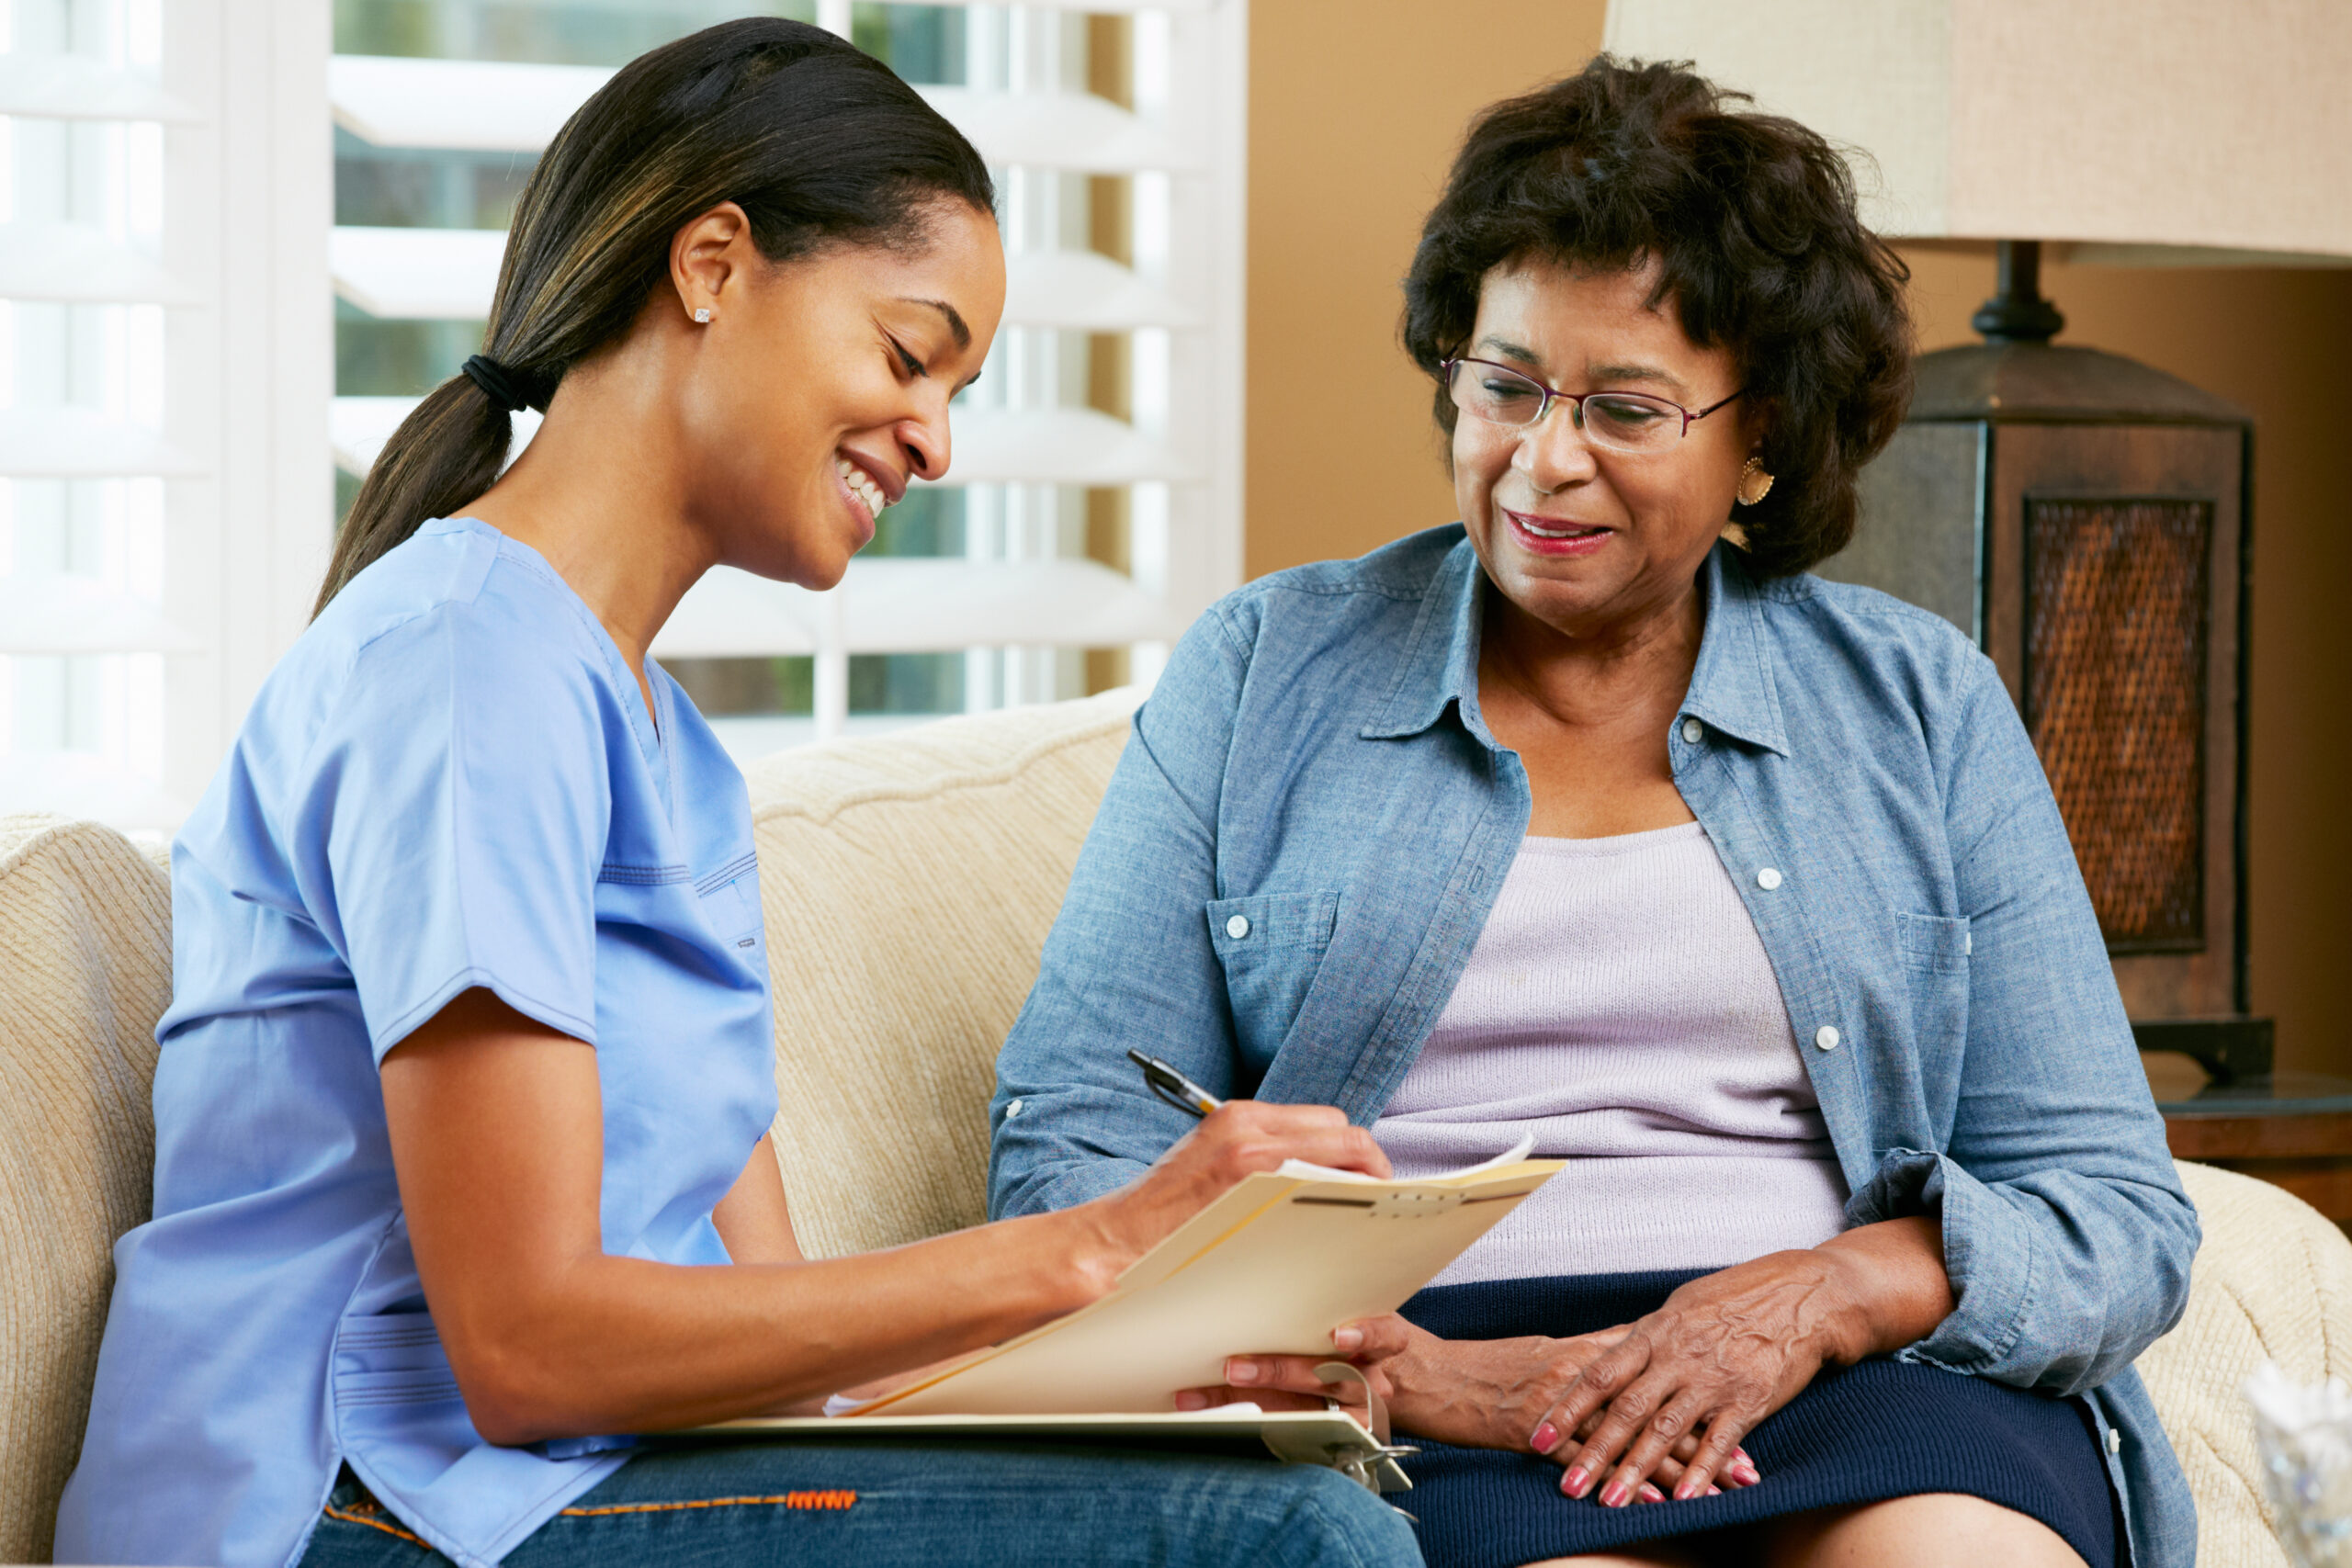 African-American nurse taking notes during visit with African-American patient